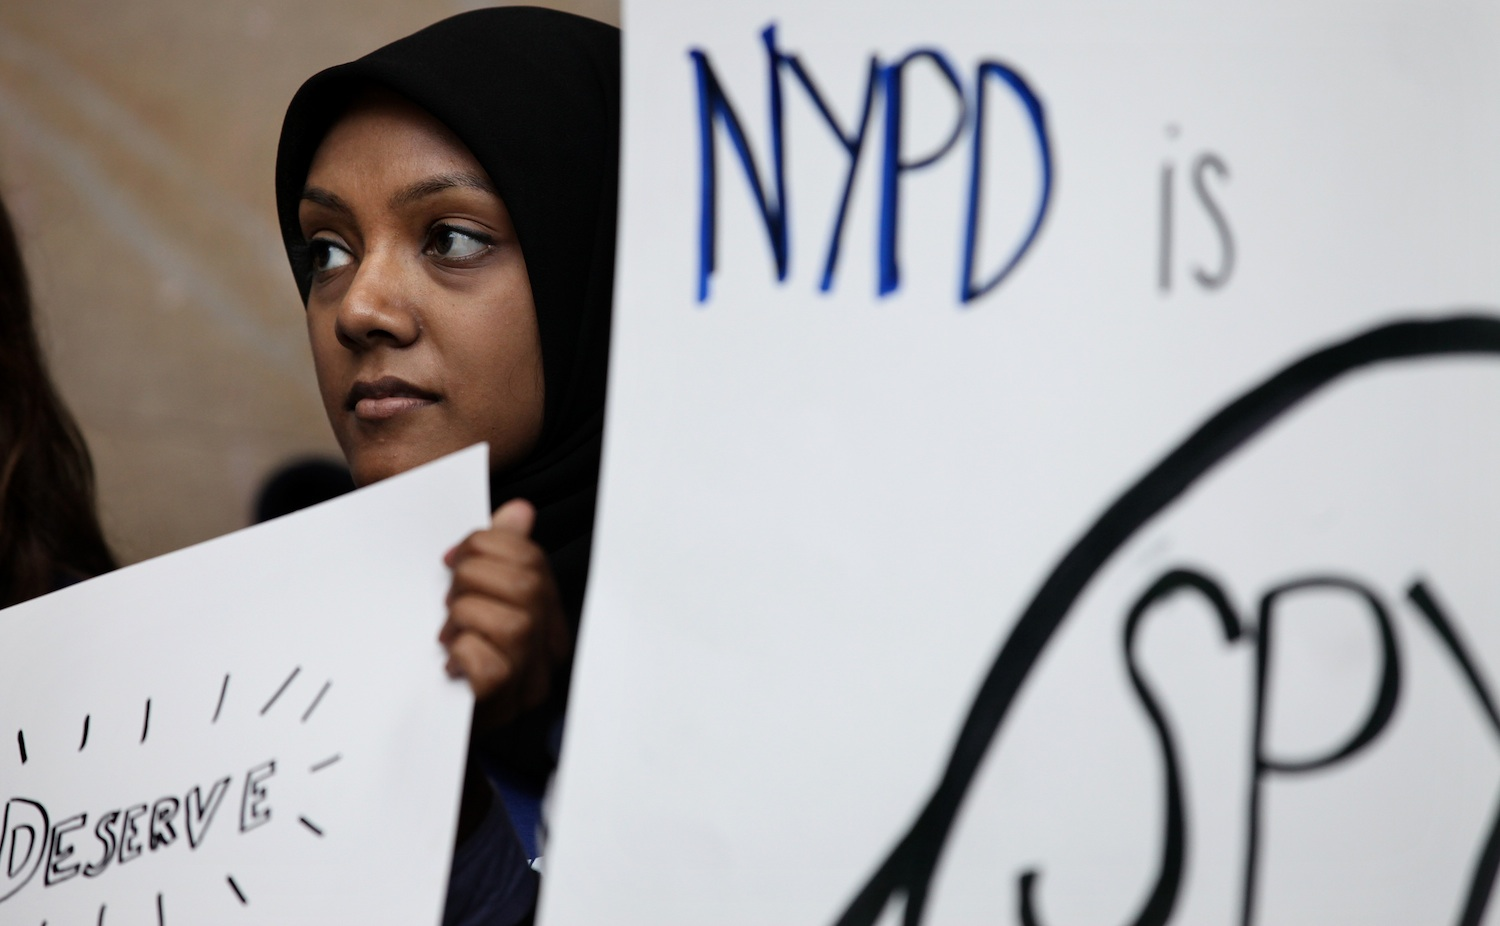 NYPD-surveillance-protest